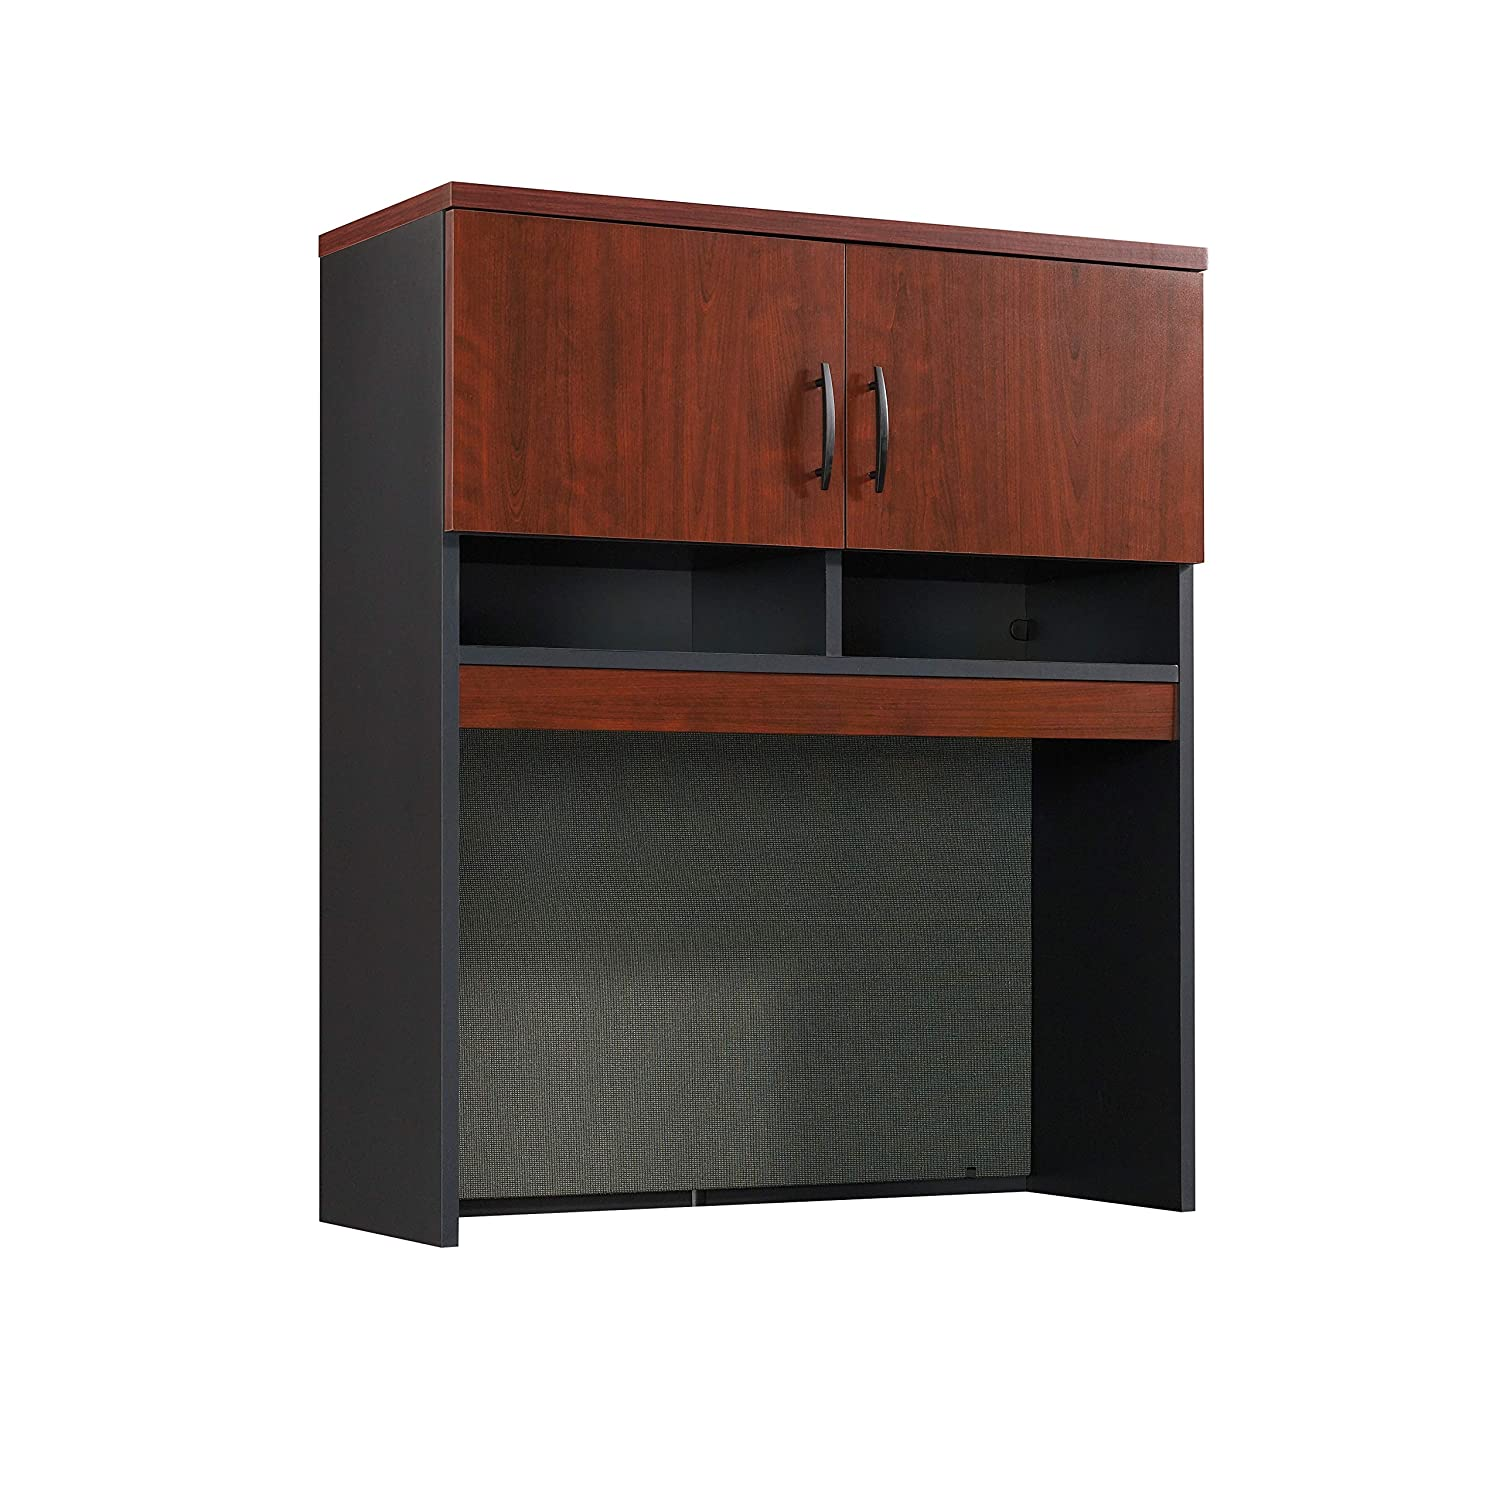 Sauder 401445 Via Lateral File Hutch, Classic Cherry and Soft Black Finish Sauder Woodworking Co